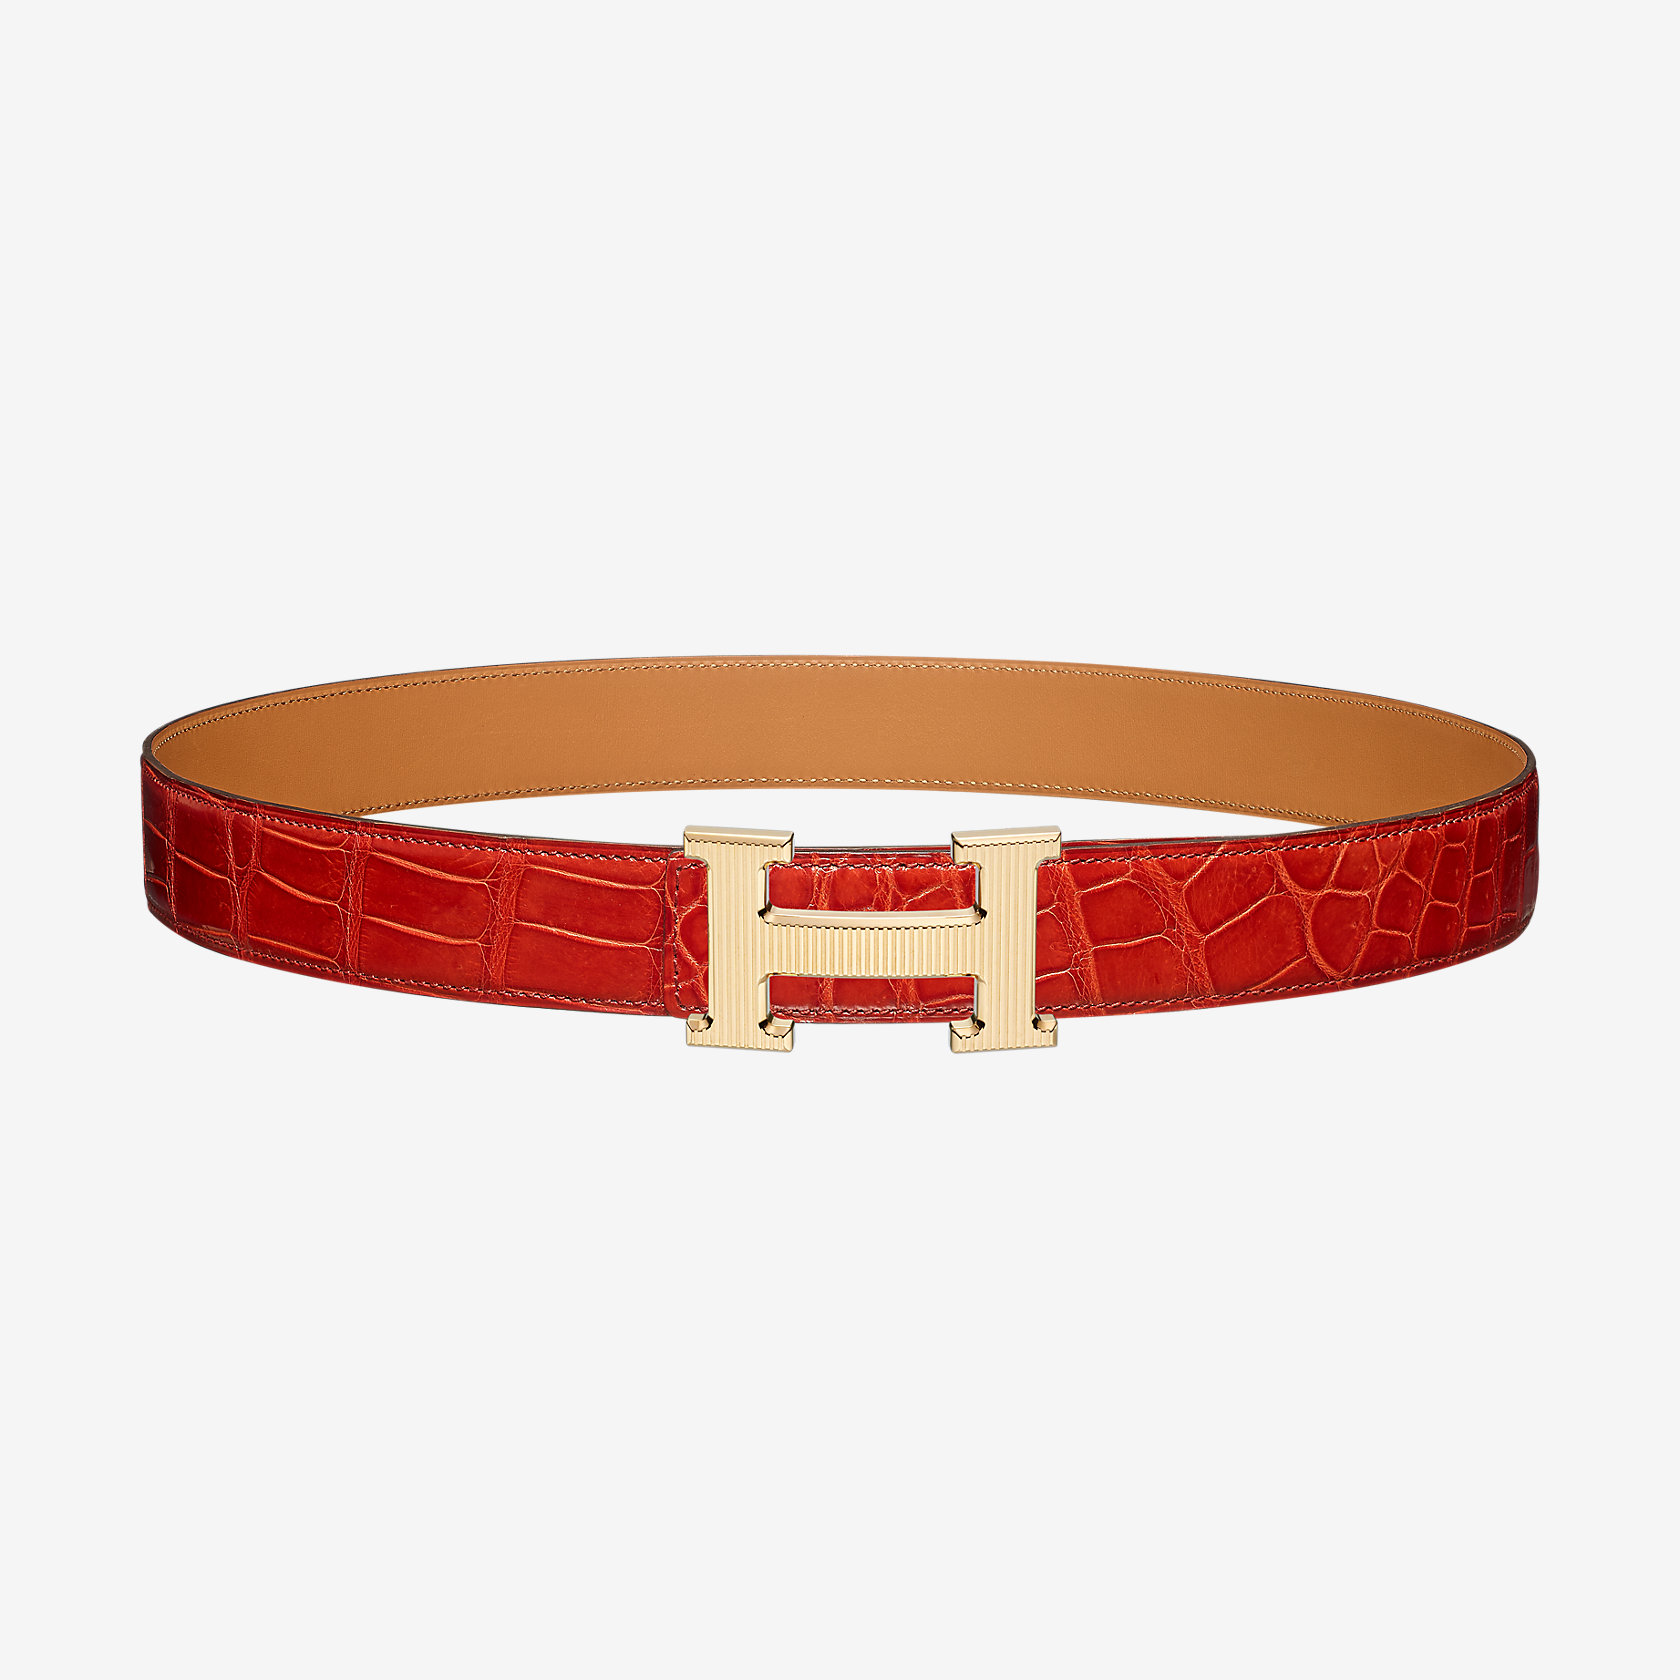 Precio pagable bastante agradable lindo baratas H Strie belt buckle & Leather strap 32 mm